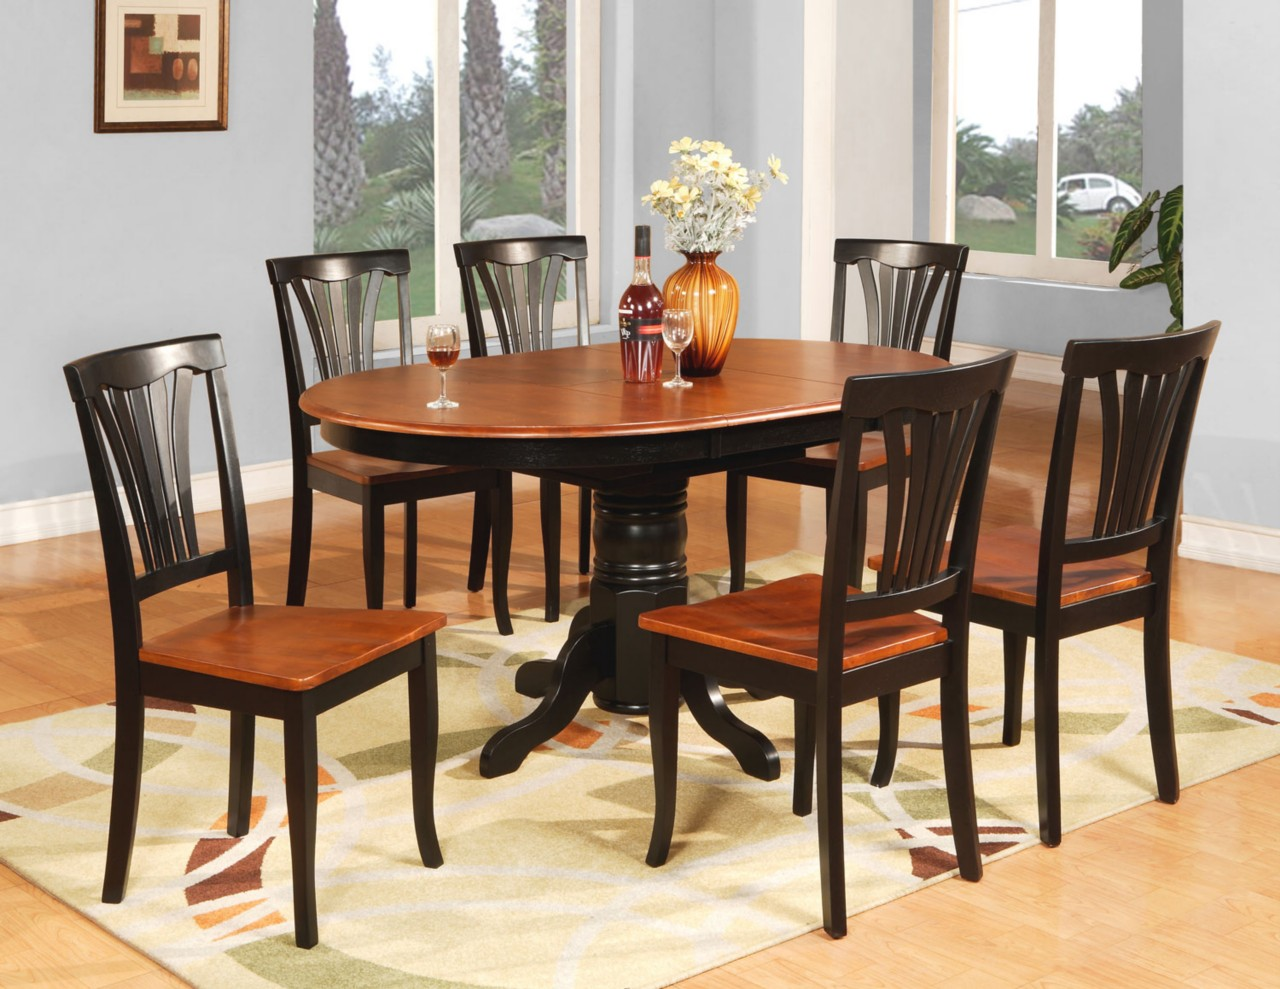 7 pc oval dinette kitchen dining room table 6 chairs ebay for Kitchen dining table chairs